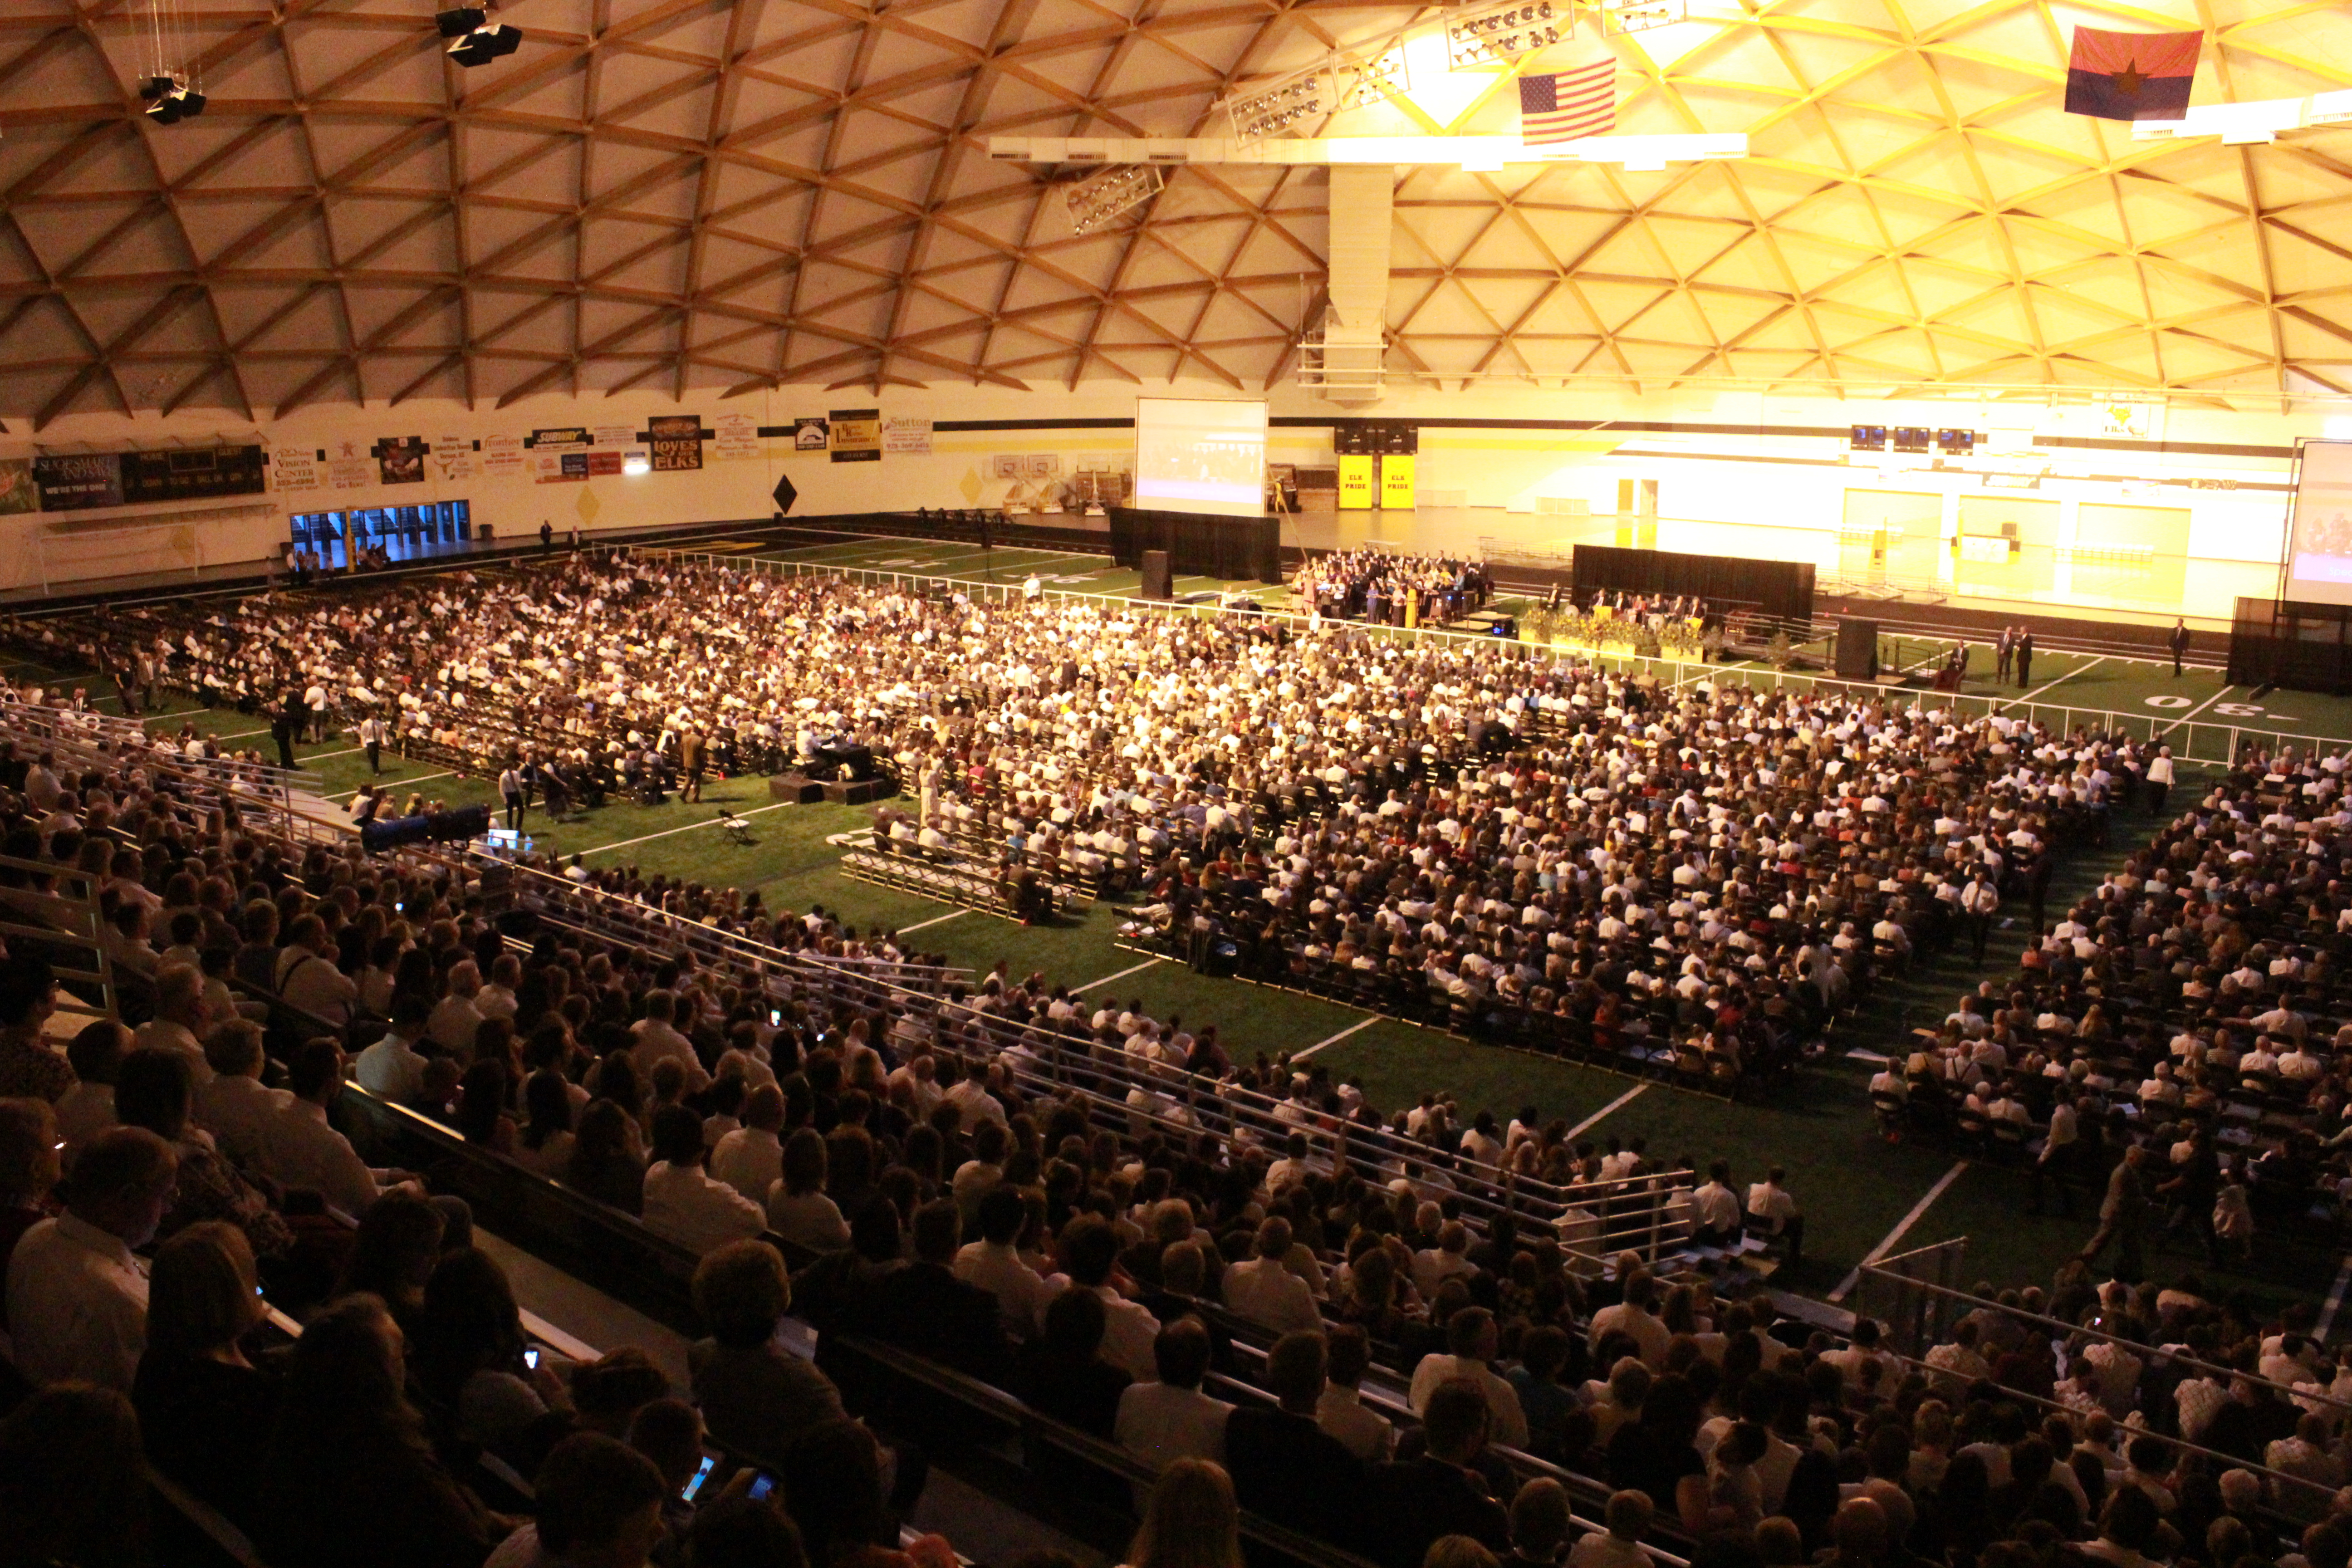 Some 8,500 members attended a devotional in the Round Valley Dome in Eagar, Ariz. on Sept. 14, 2019.